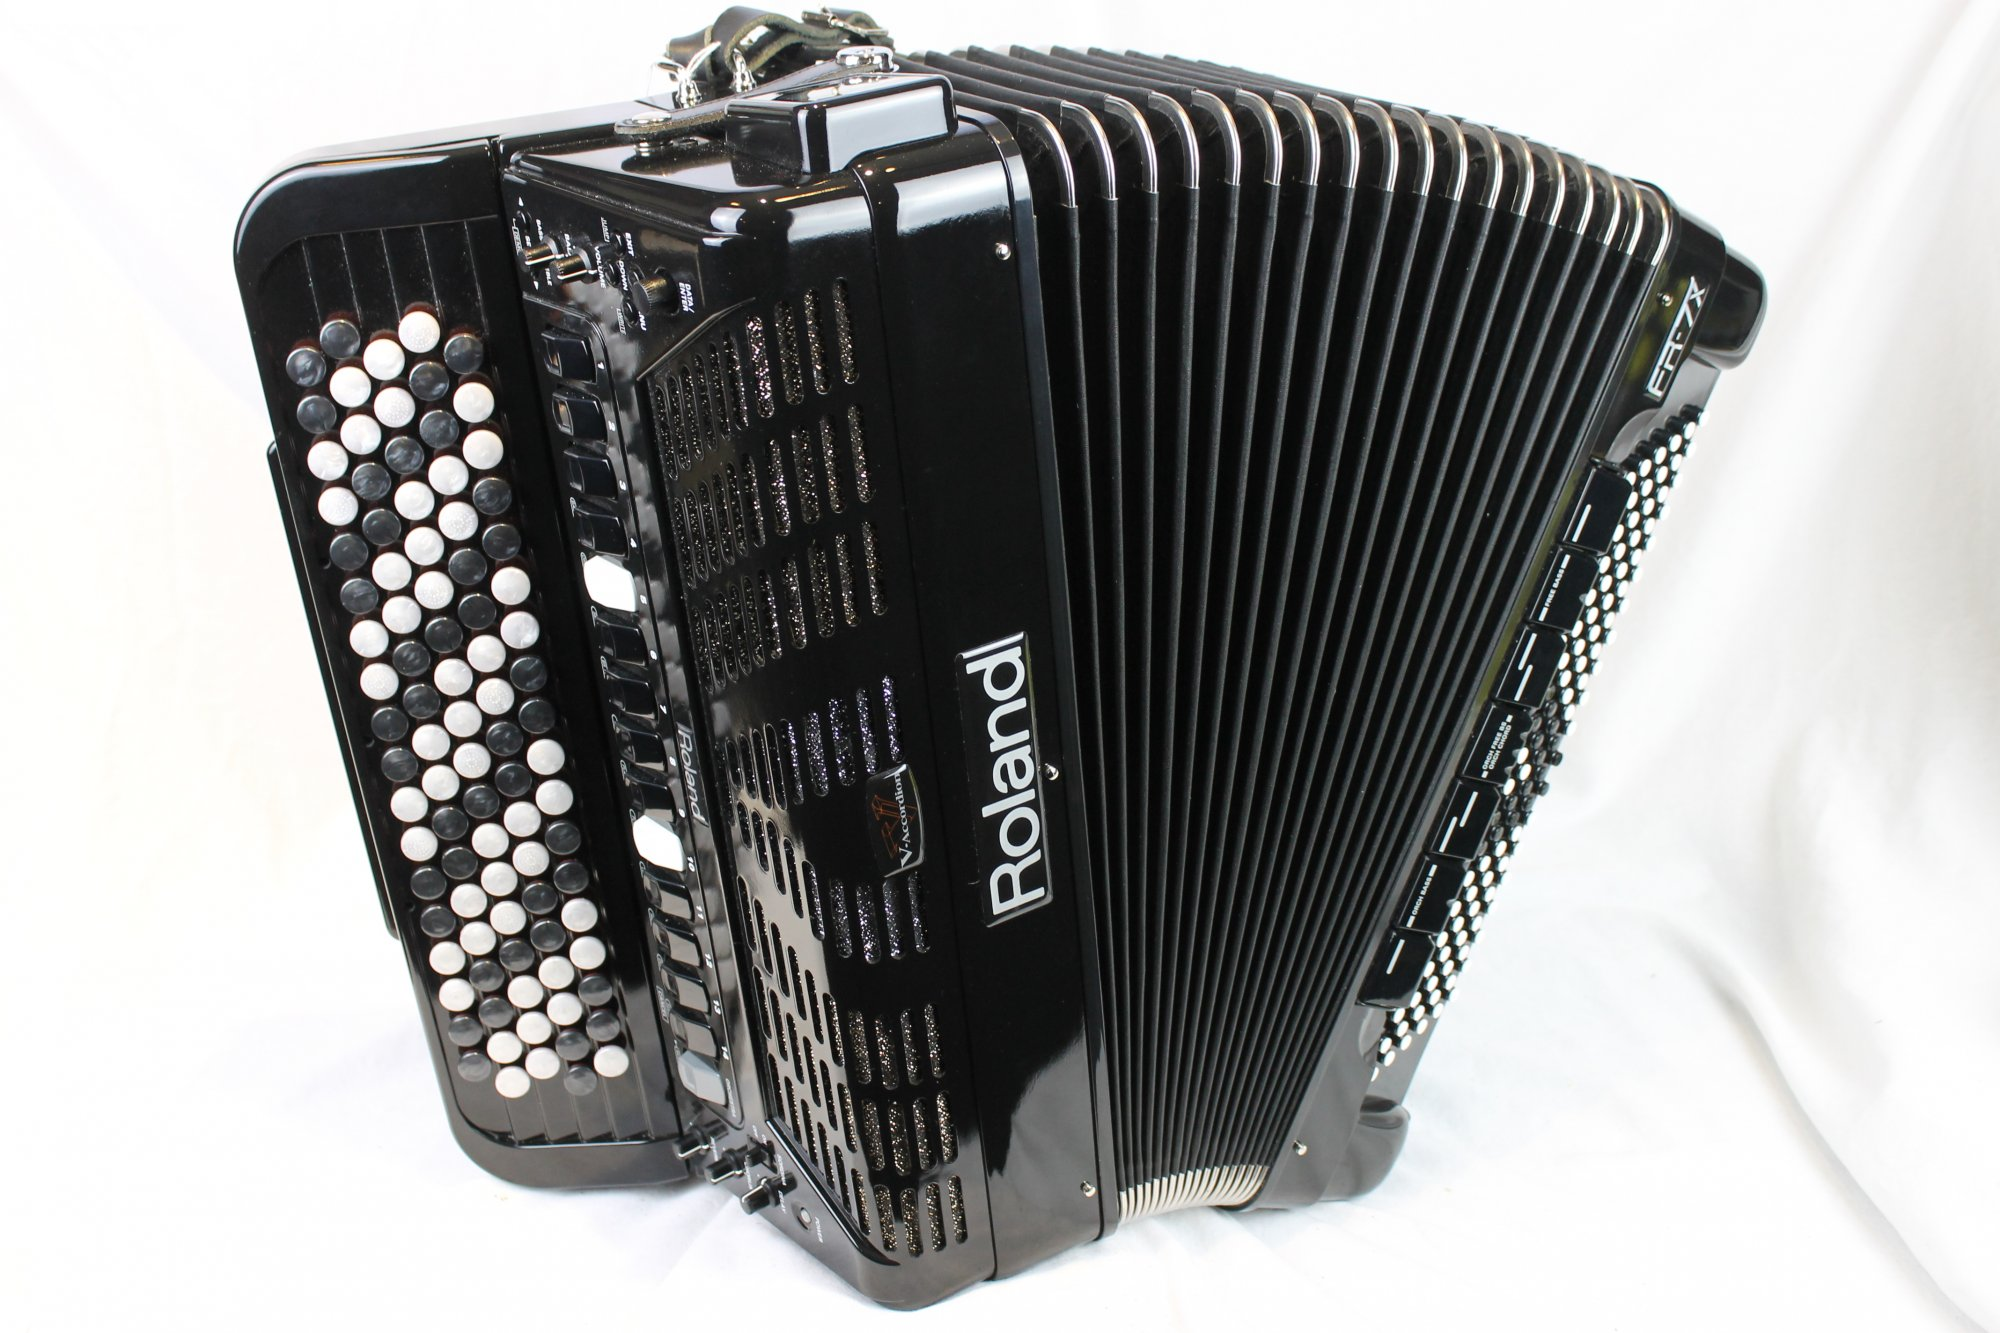 3559 - Black Roland FR-7XB Digital Piano Accordion 92 120